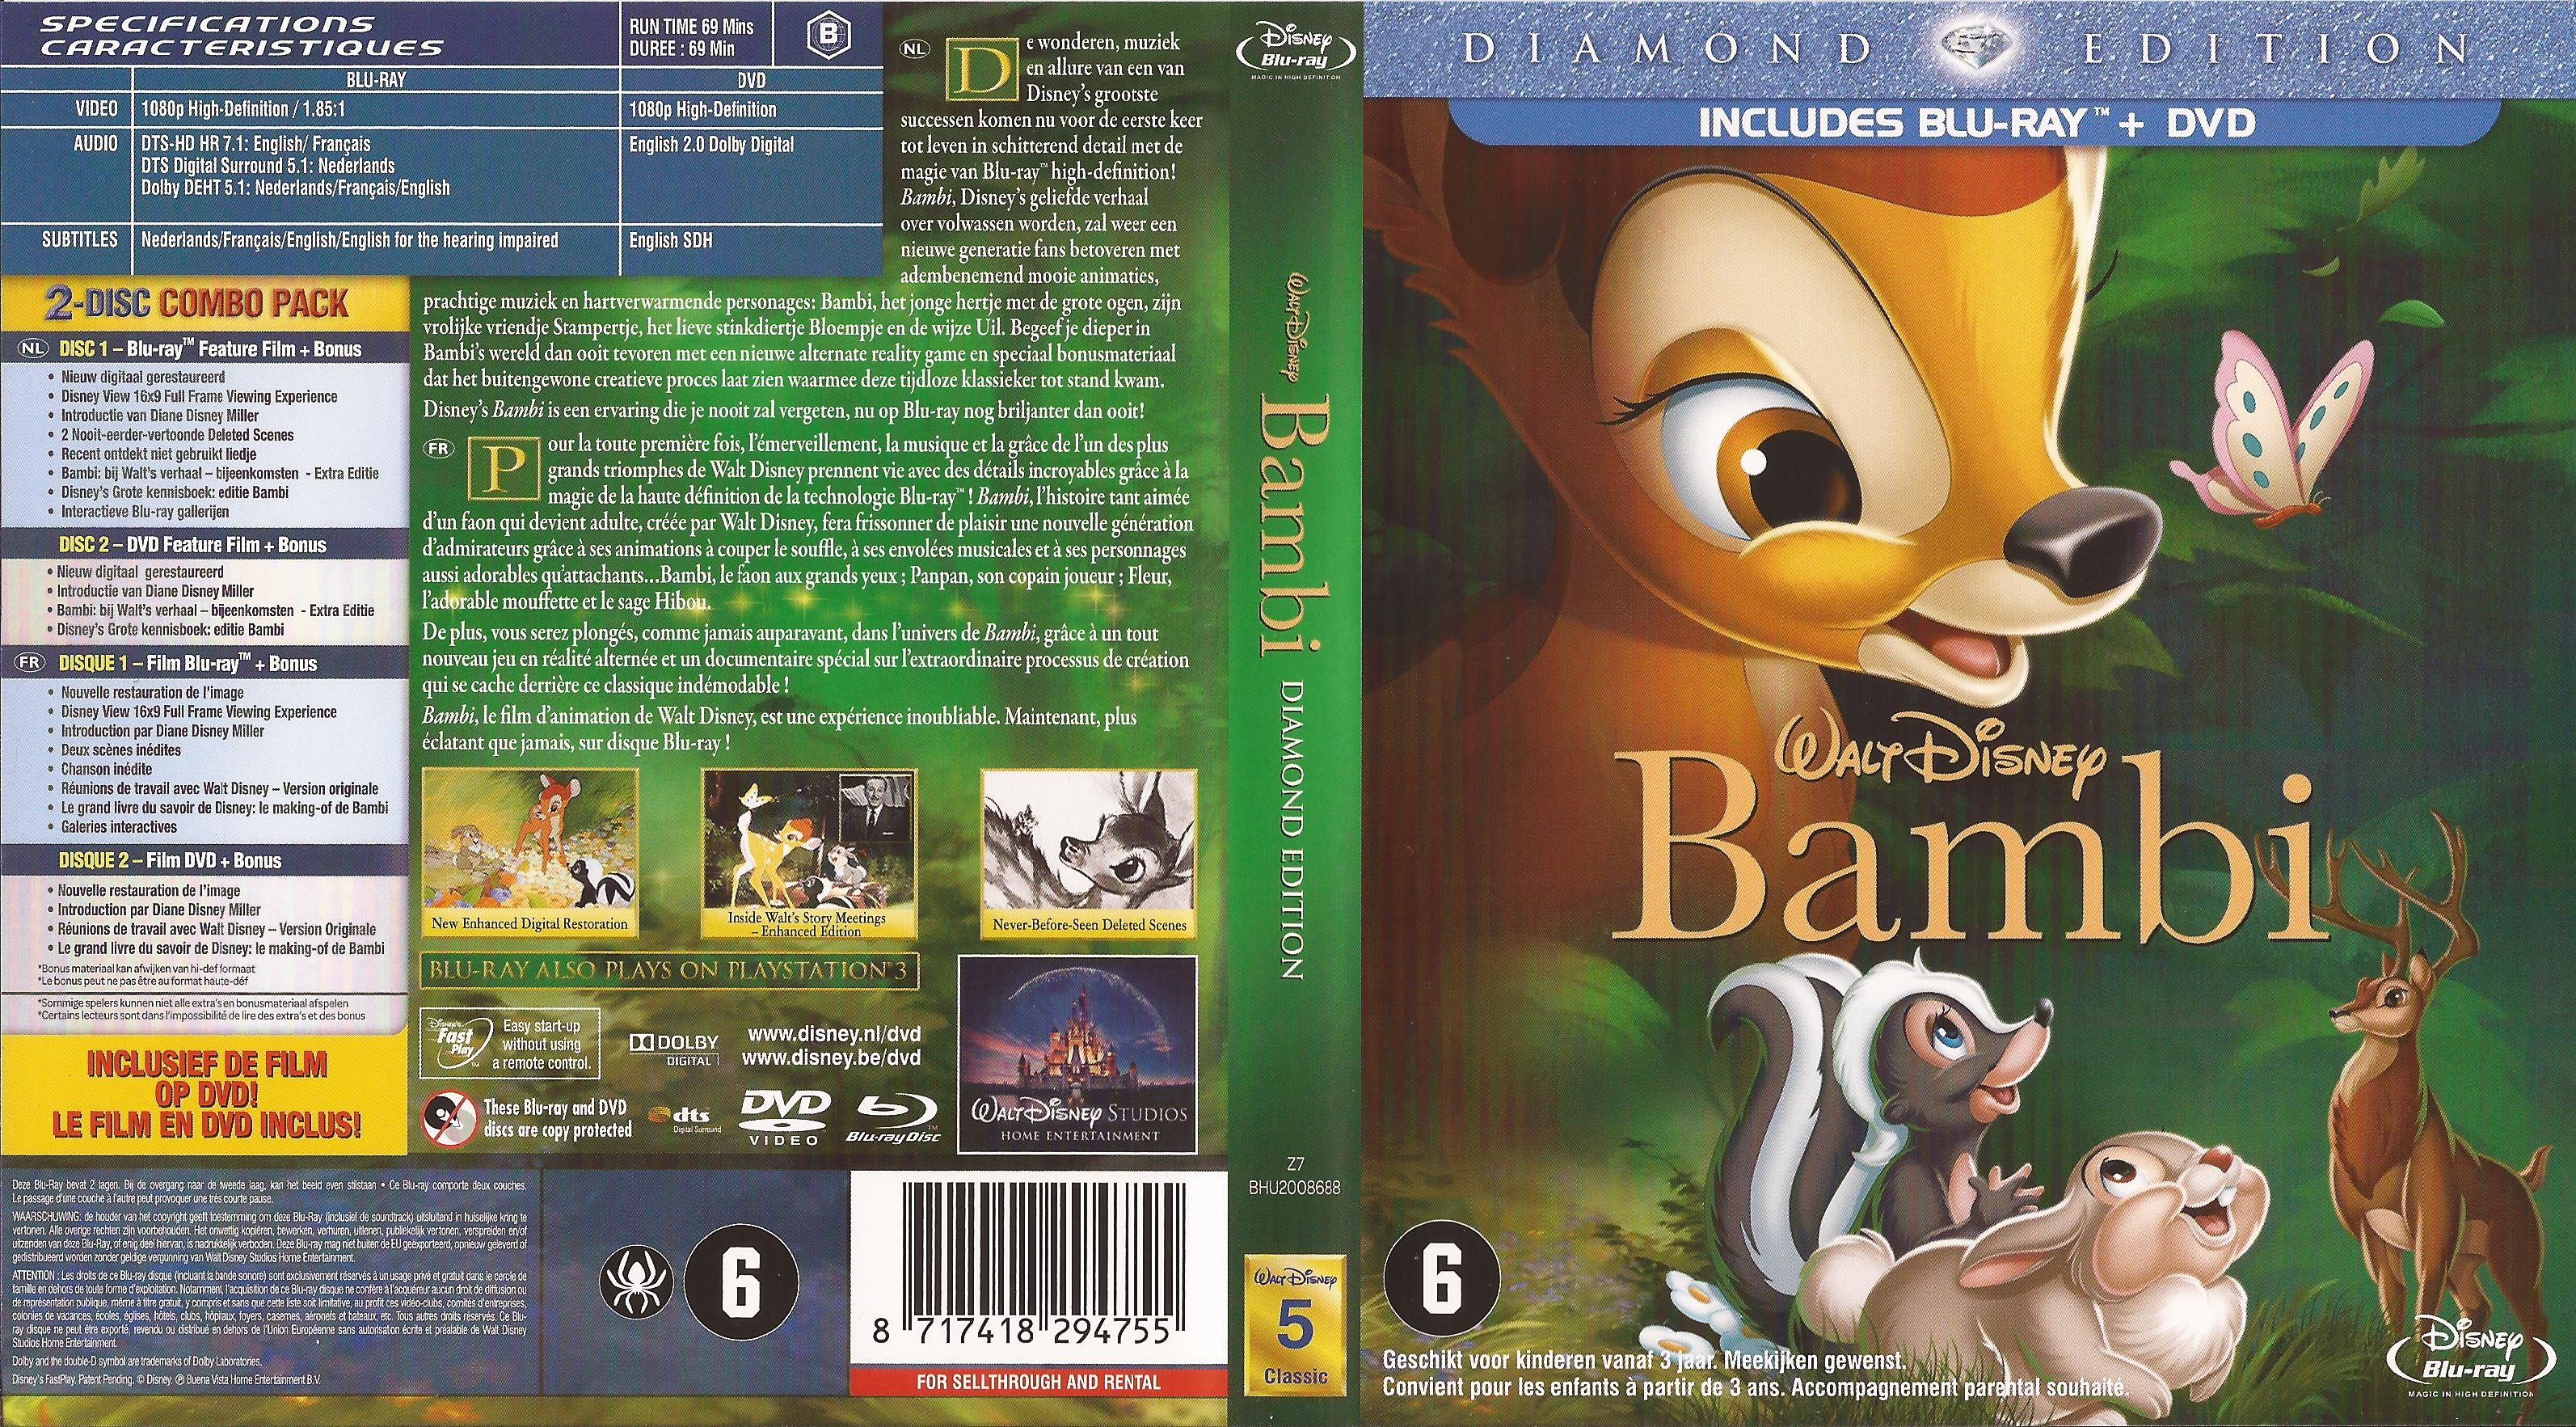 Ds 006 1942 Bambi Diamond Edition Includes Blu